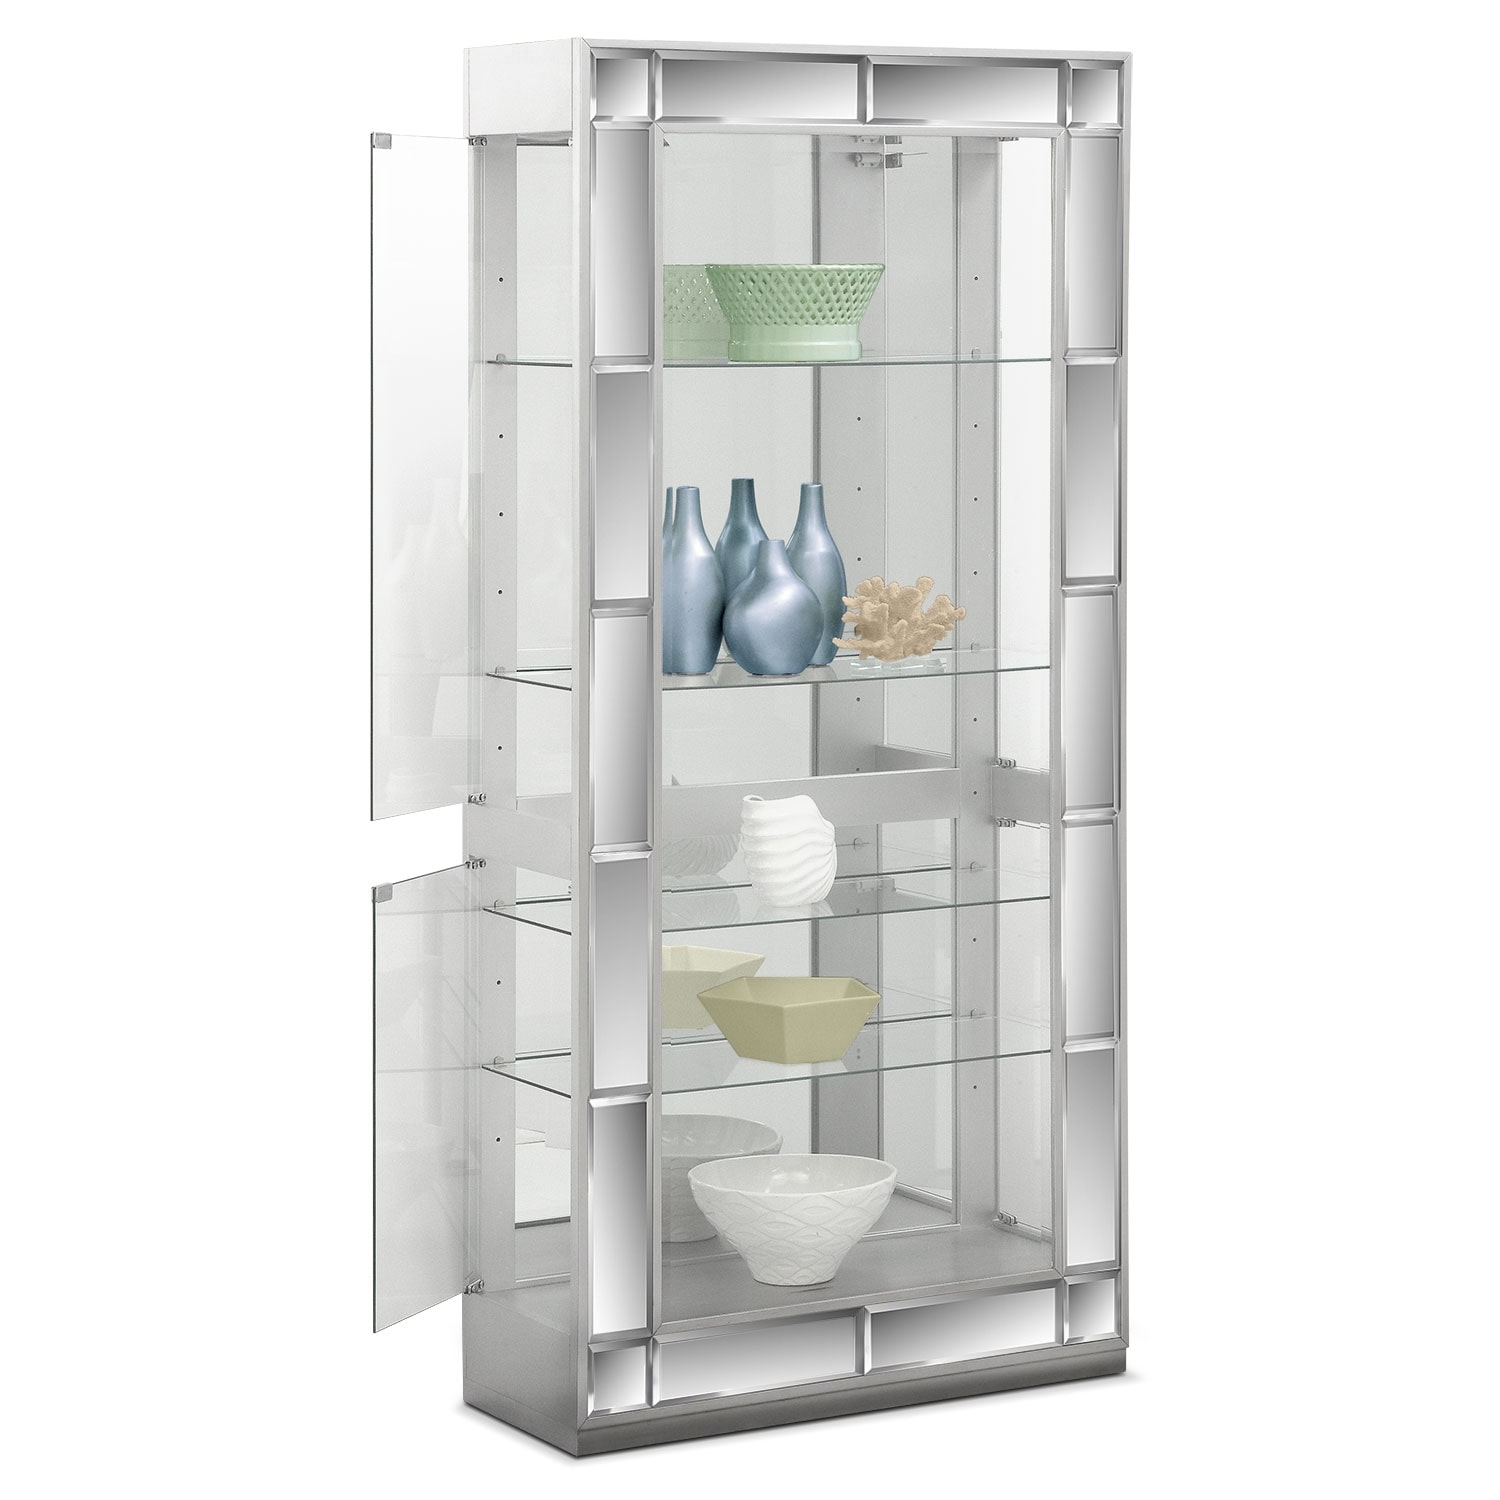 dining room curio cabinets | Starlet Curio | Value City Furniture